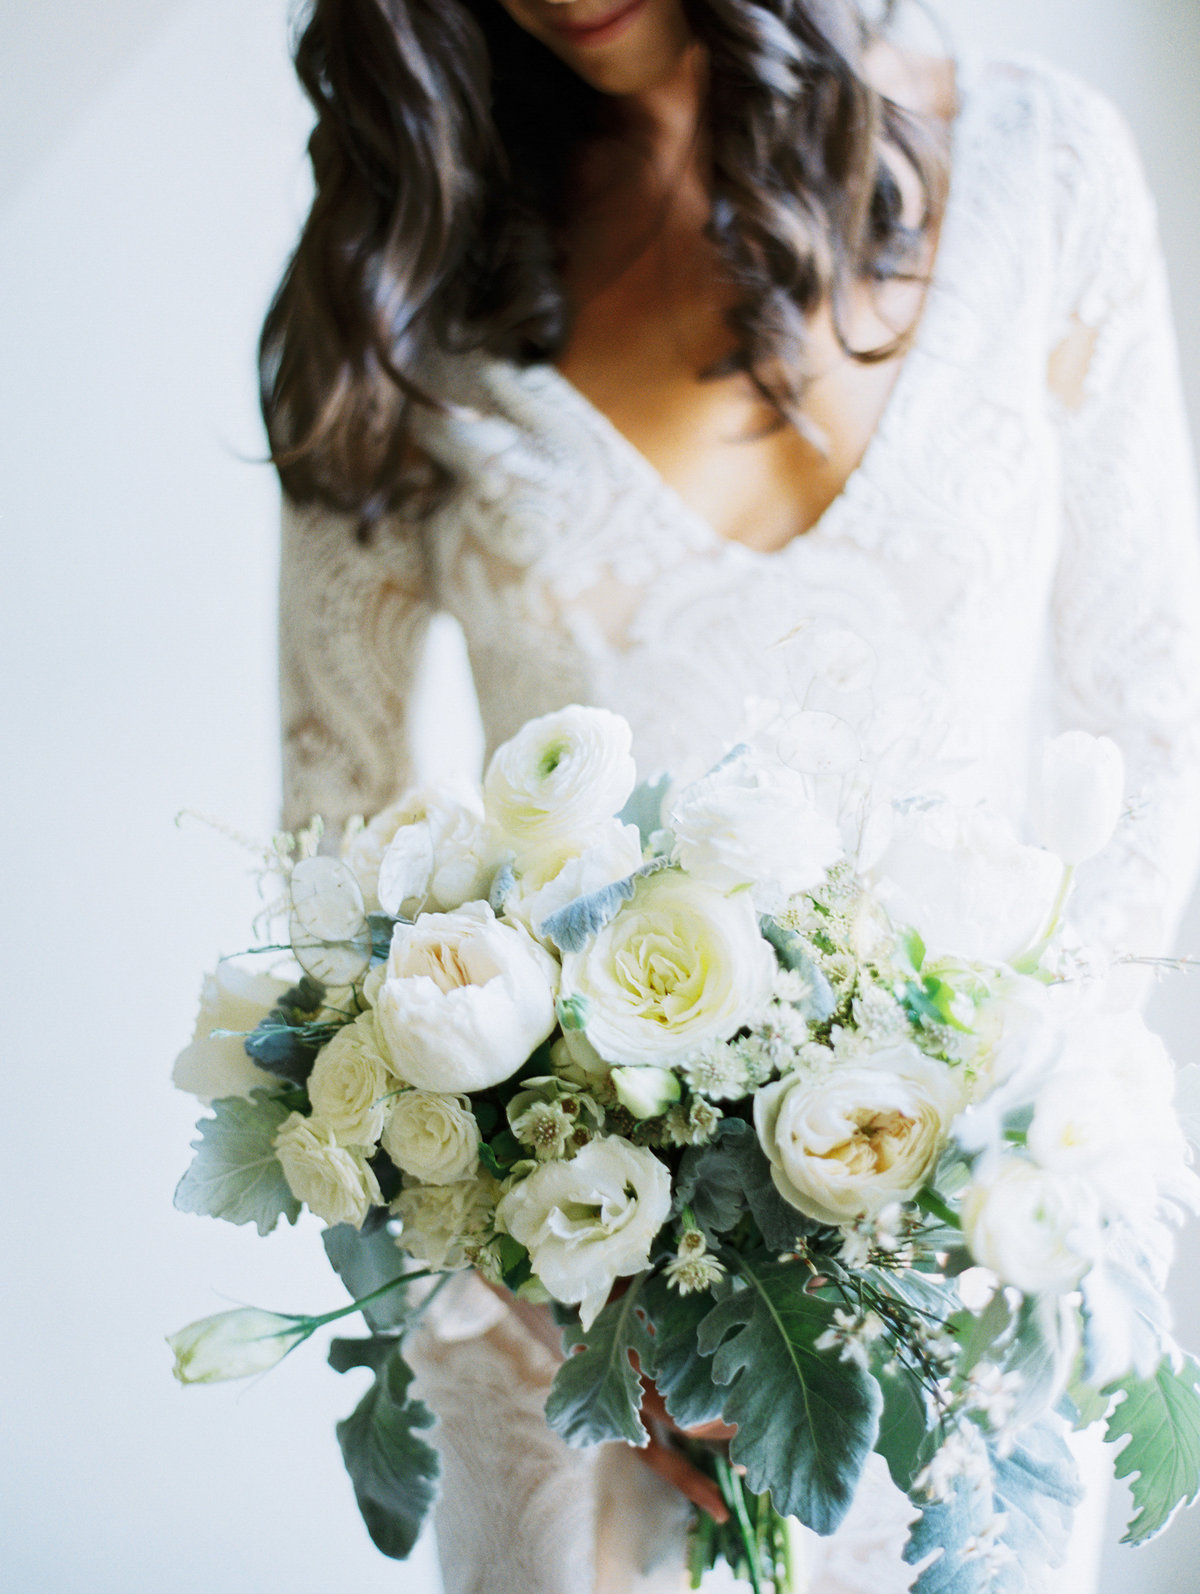 Natalie Bray Studios, Natalie Bray Photography, Southern California Wedding Photographer, Fine Art wedding, Destination Wedding Photographer, Southern california wedding photographer -2